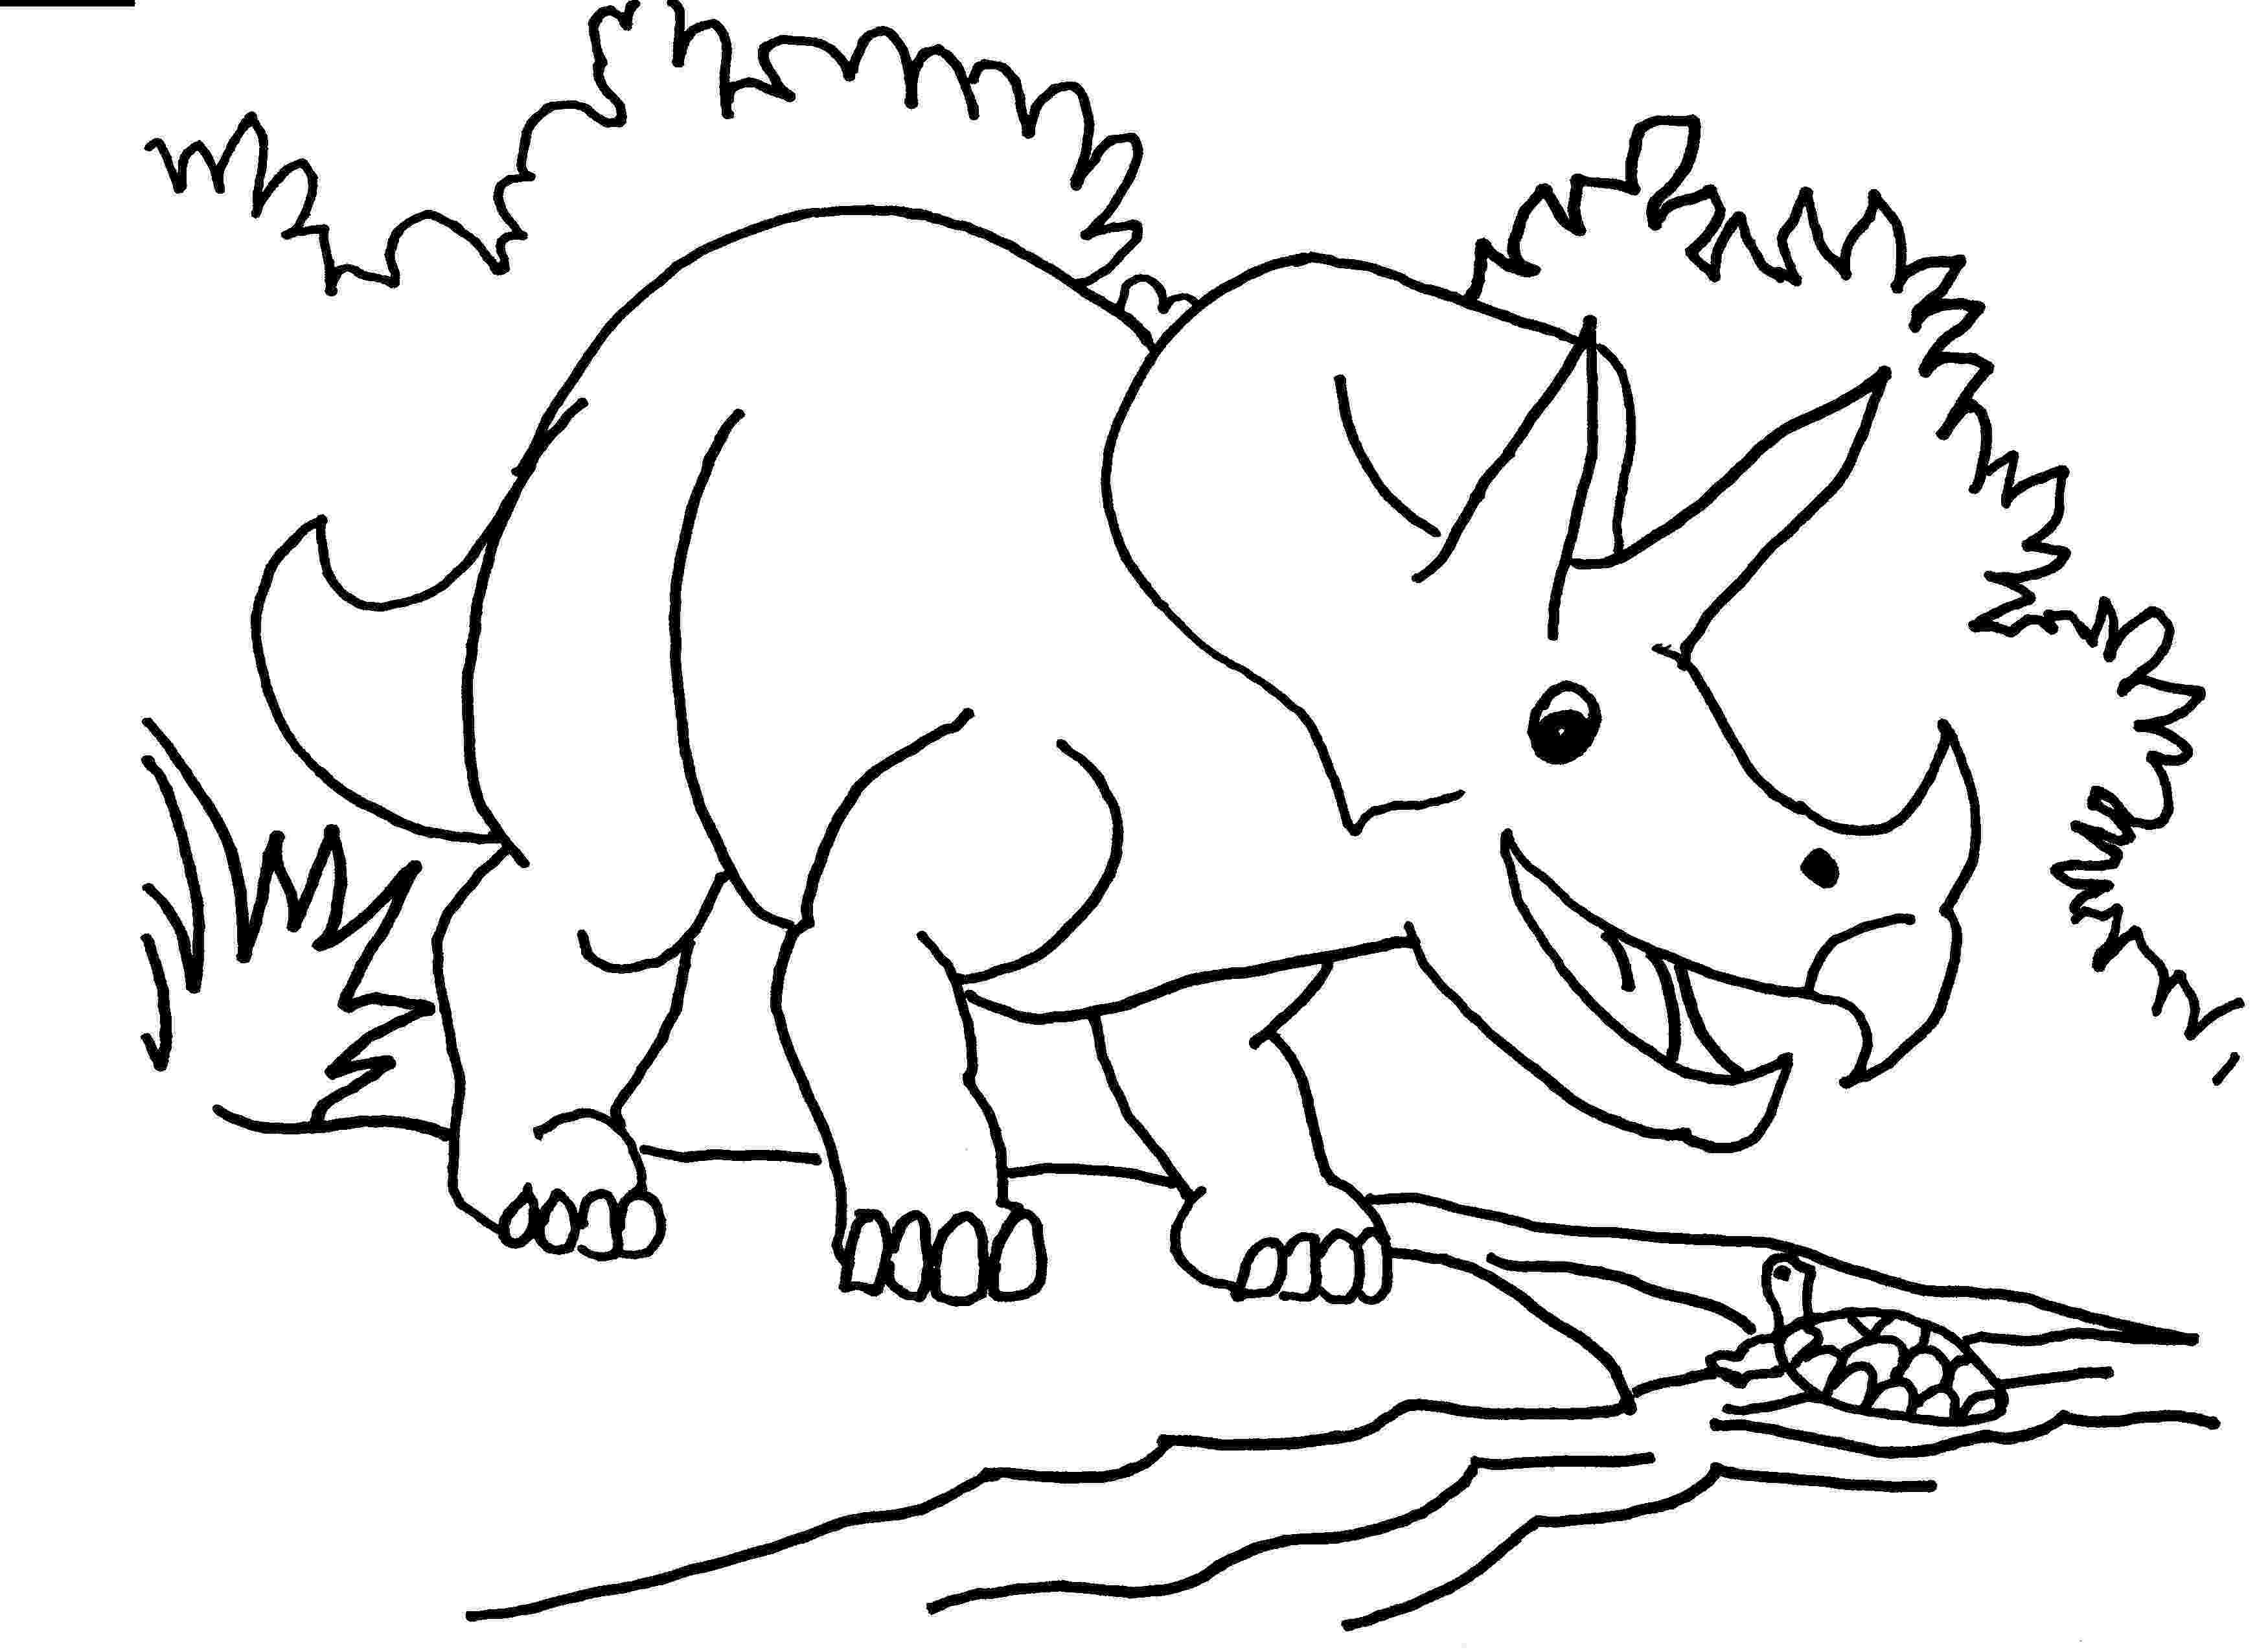 triceratops pictures to color printable triceratops coloring pages for kids cool2bkids pictures color to triceratops